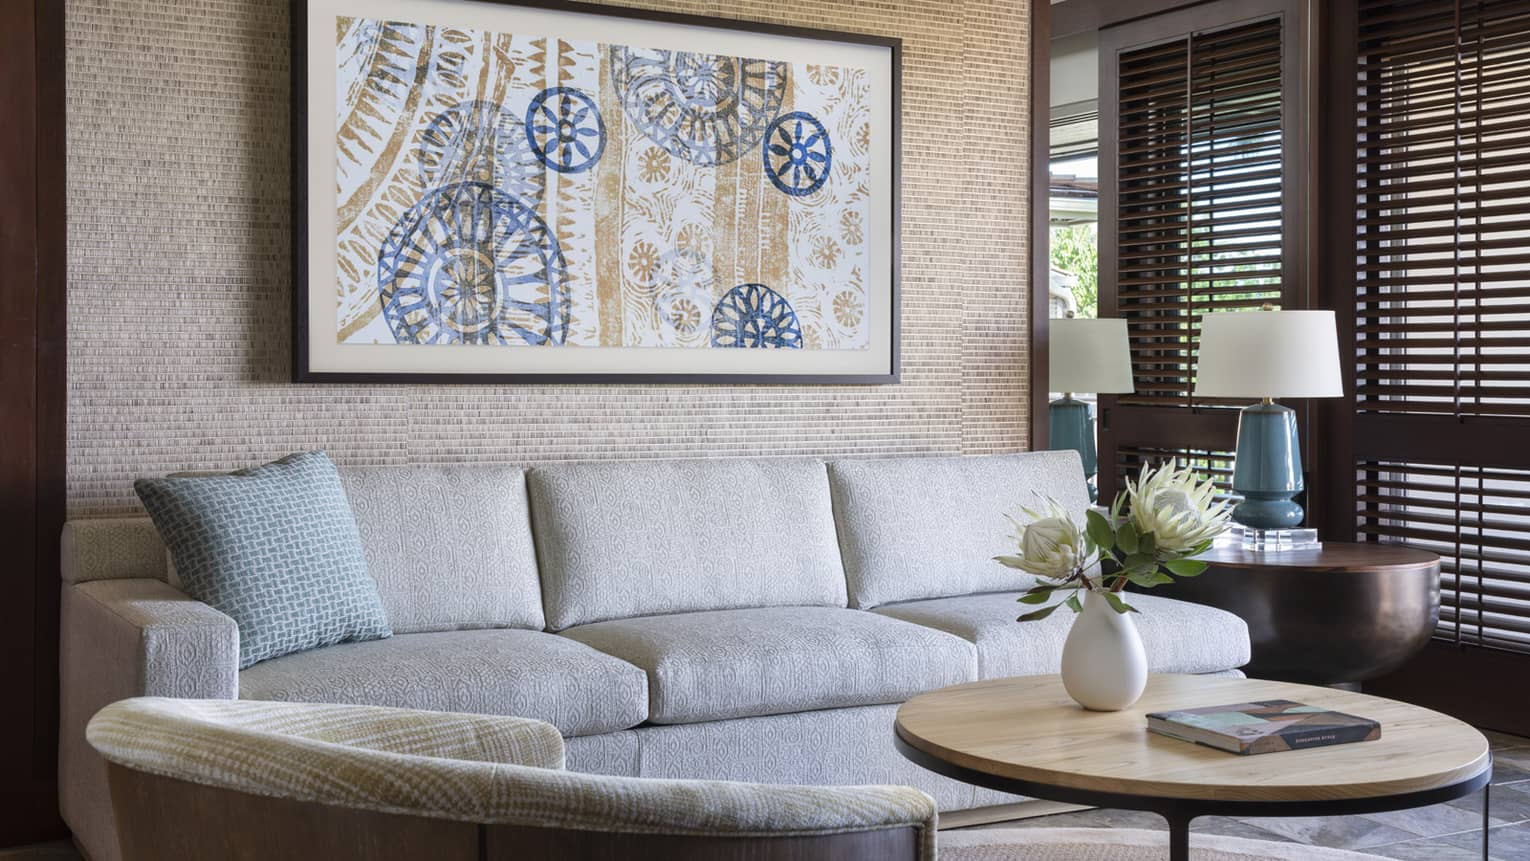 Living room with beige sofa, arm chair, round coffee table, artwork on wall, lamp